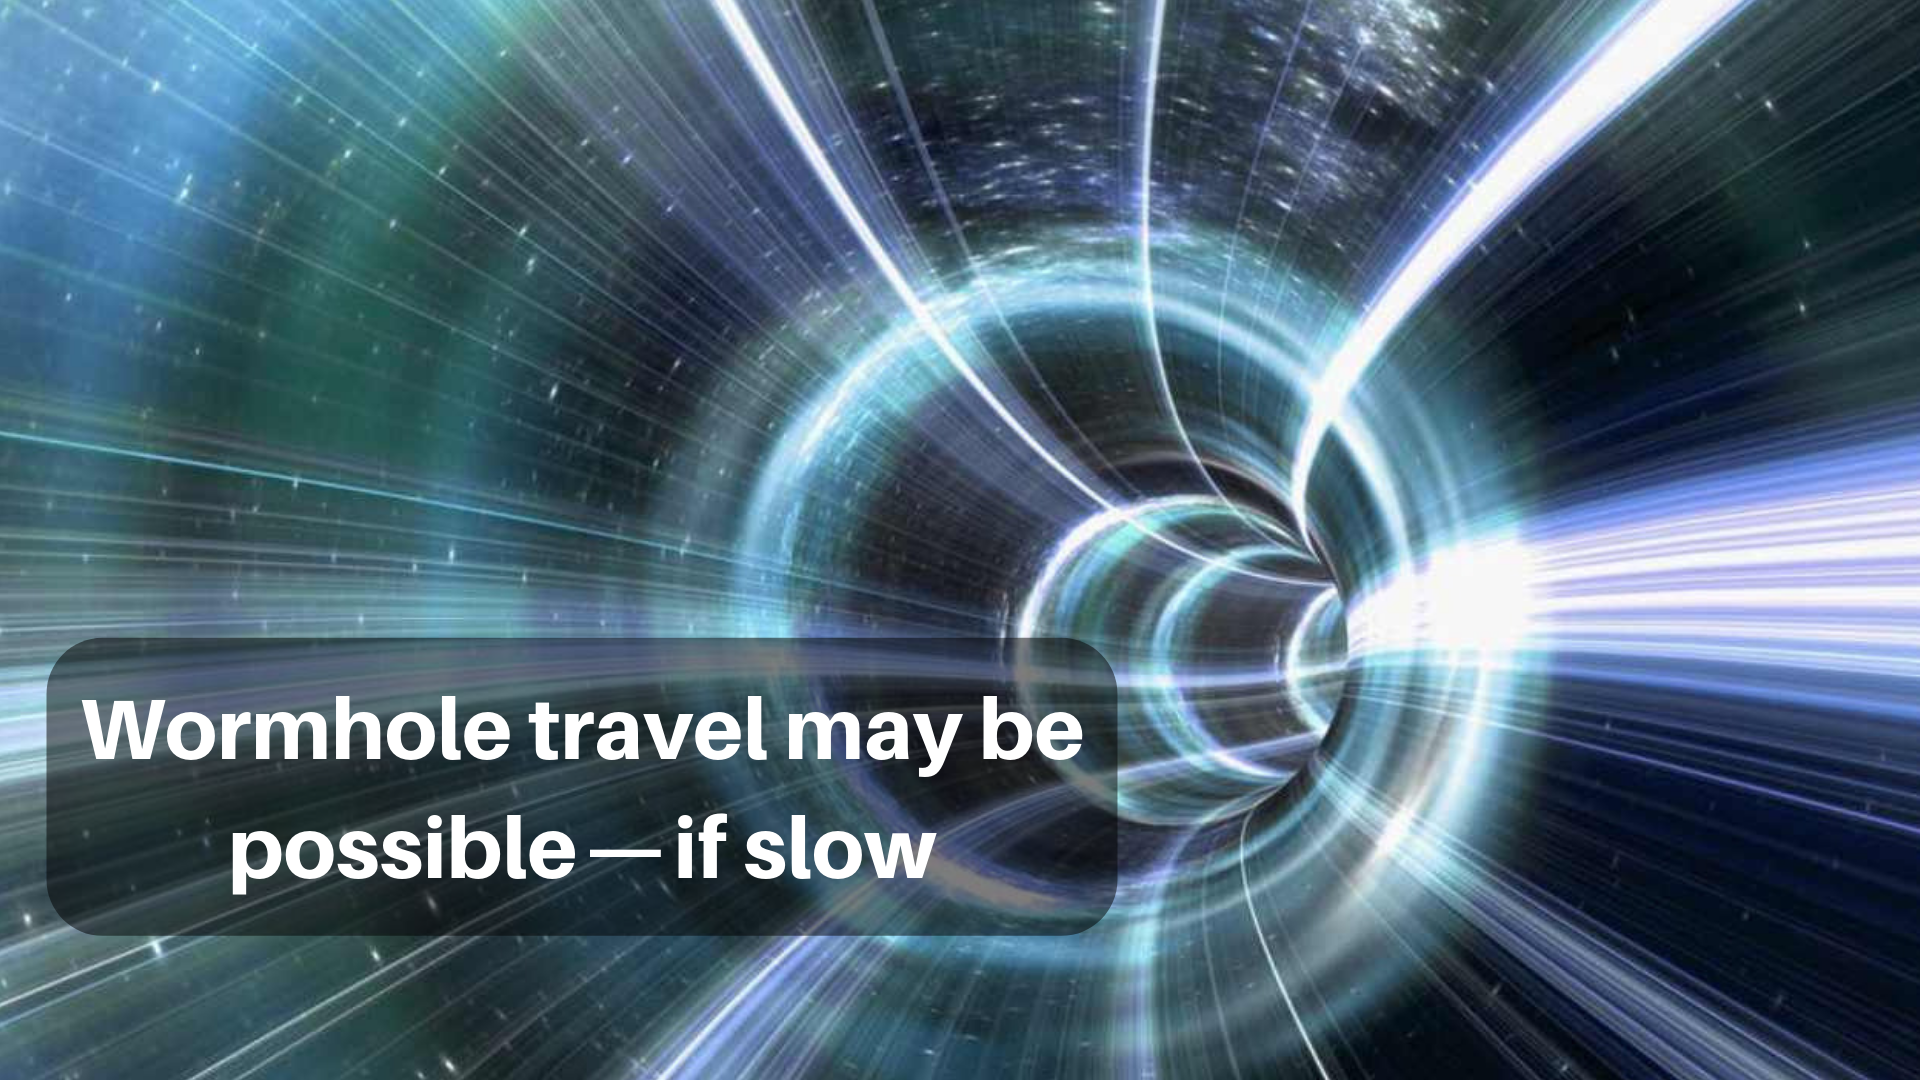 Wormhole travel may be possible — if slow - Predict - Medium